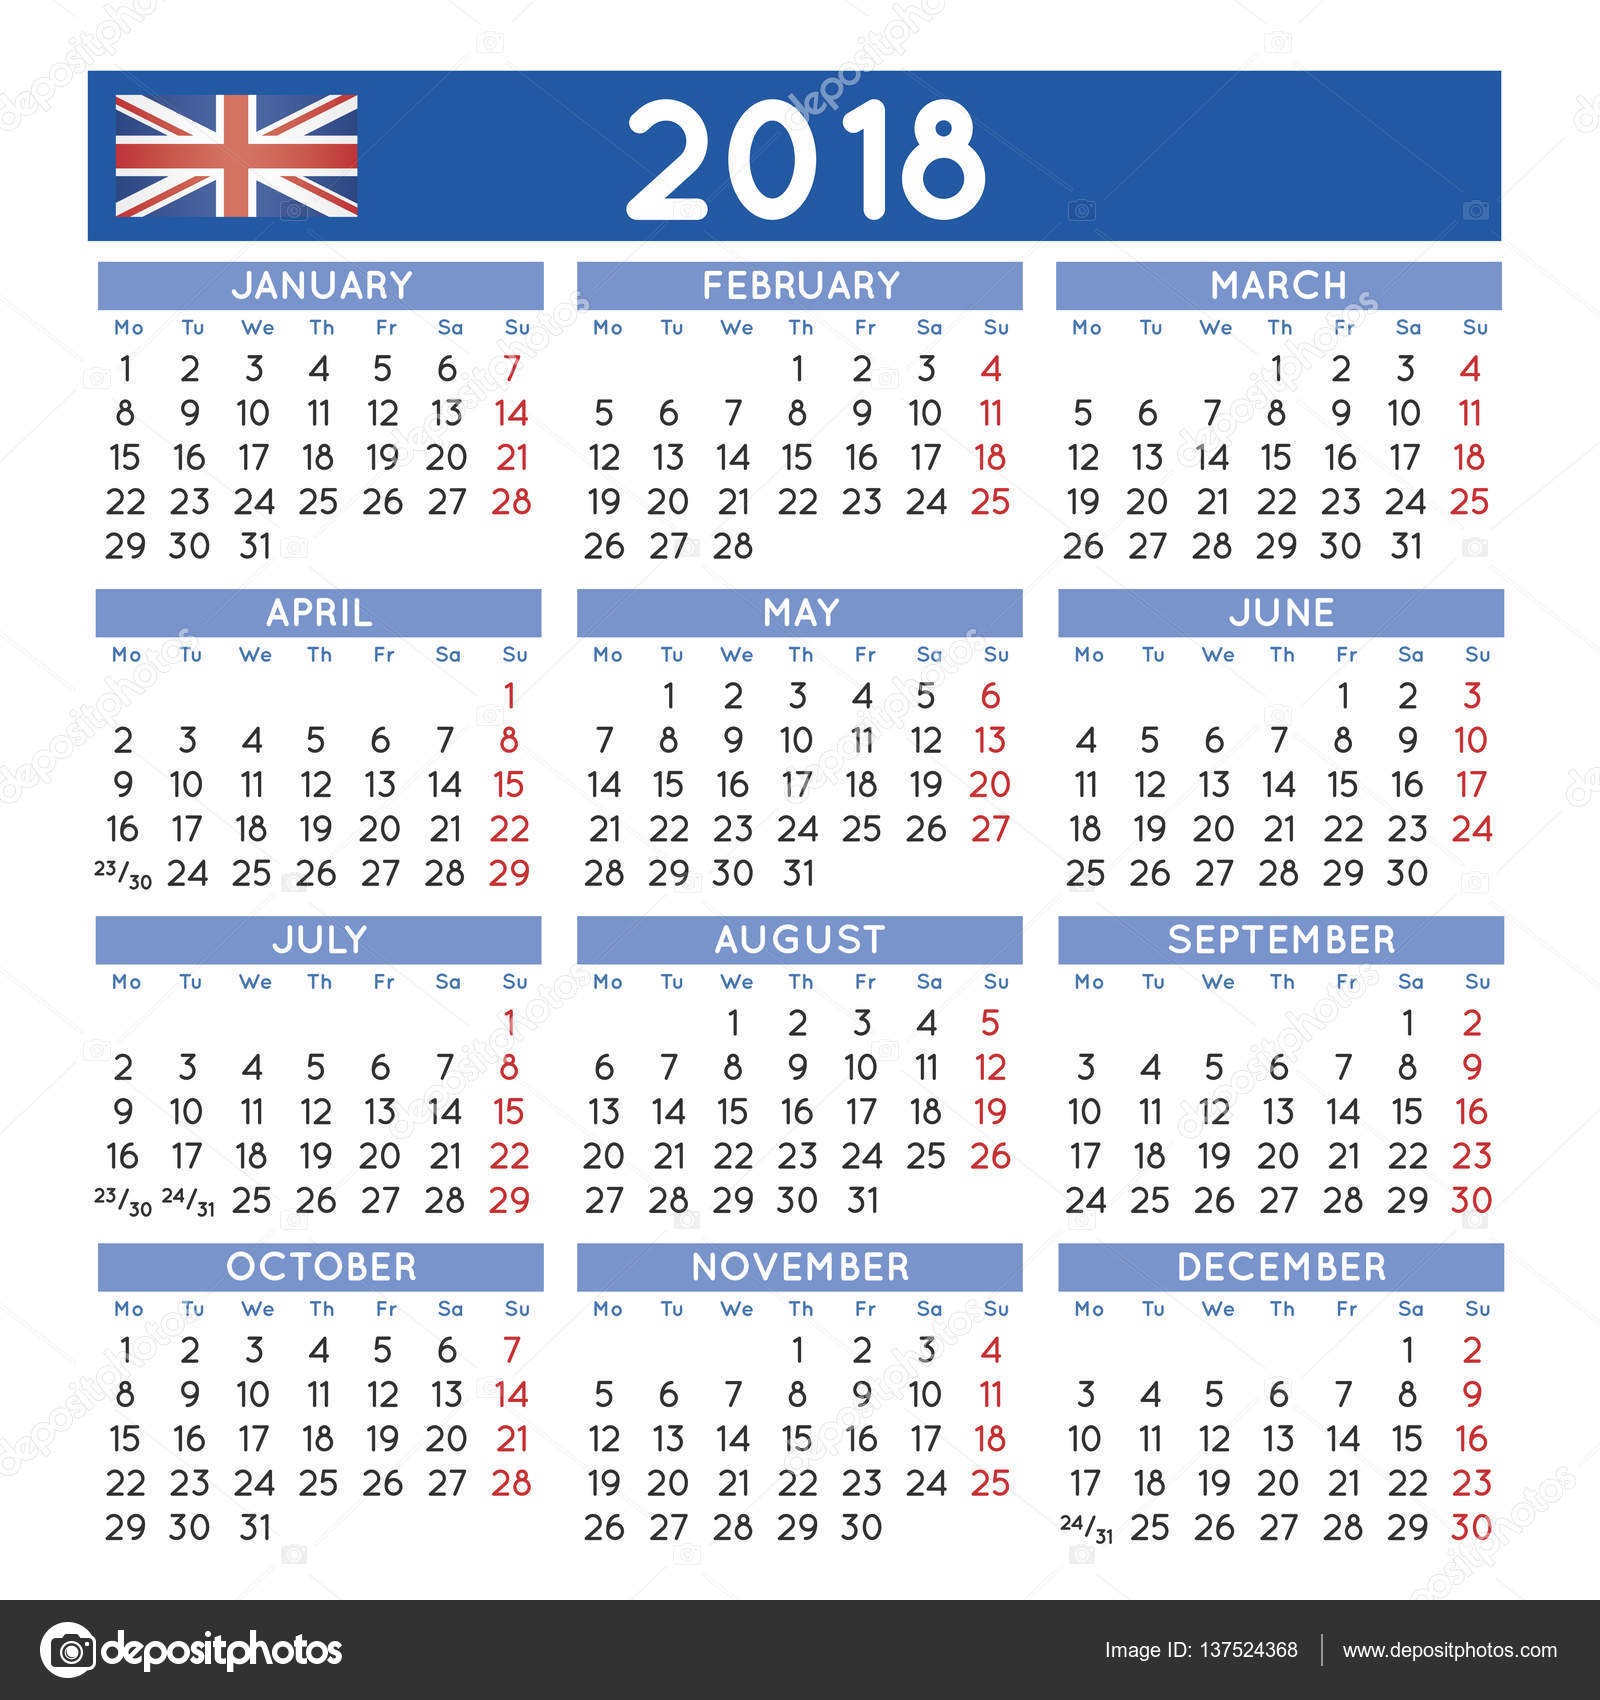 Calendar English : Squared calendar english uk week starts on monday